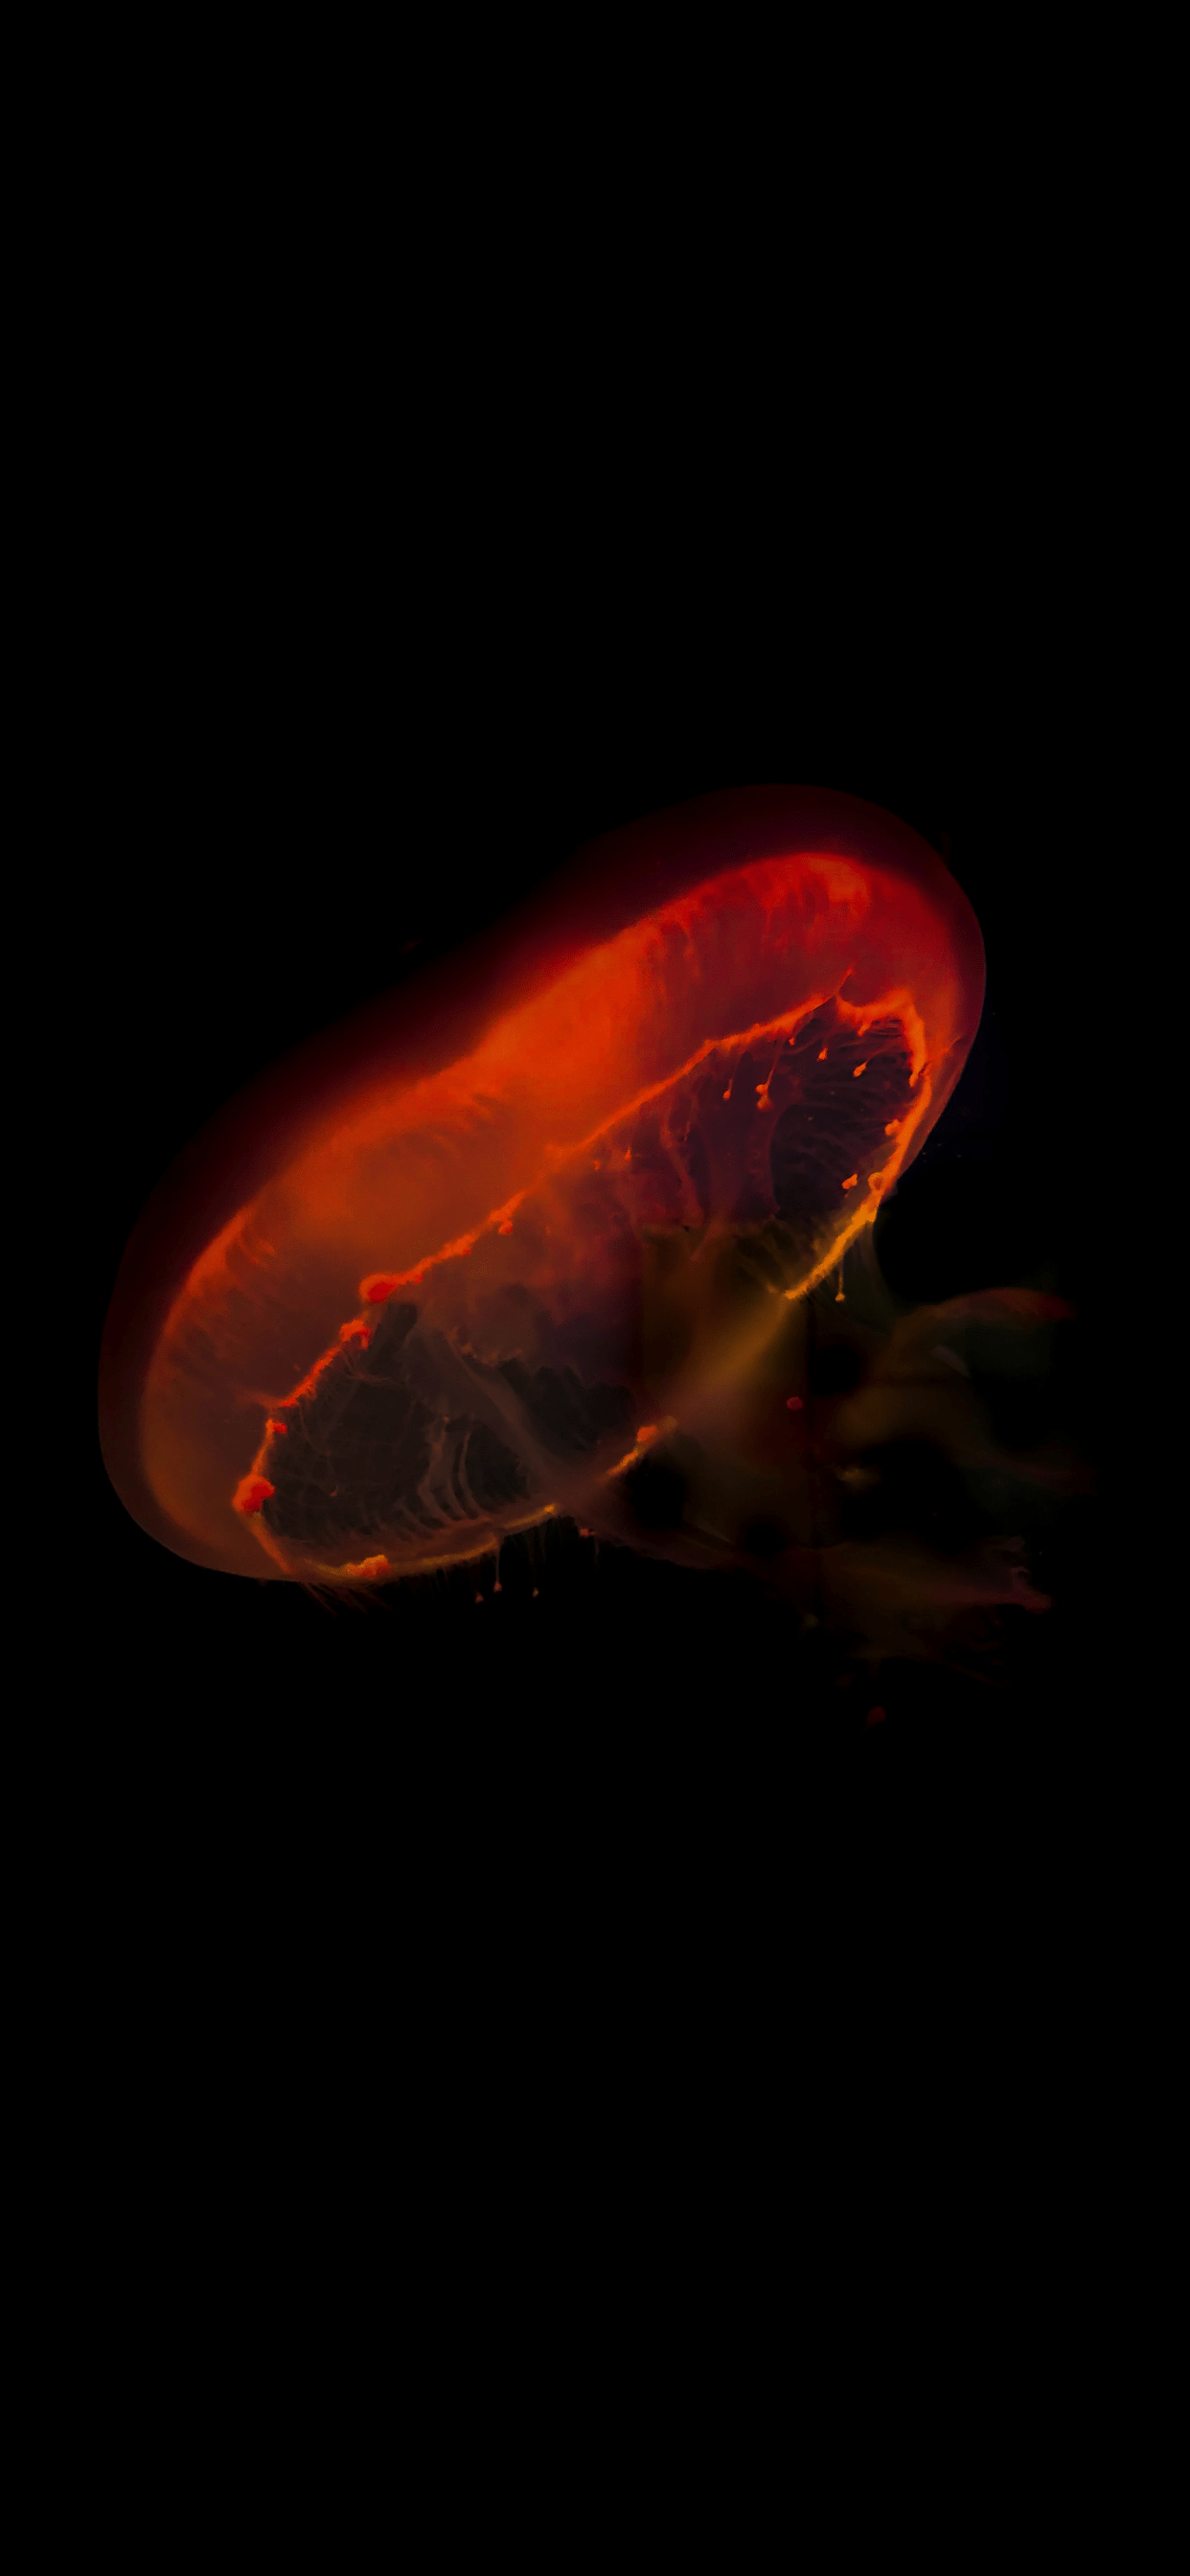 iPhone wallpapers jelly fish orange Jellyfish